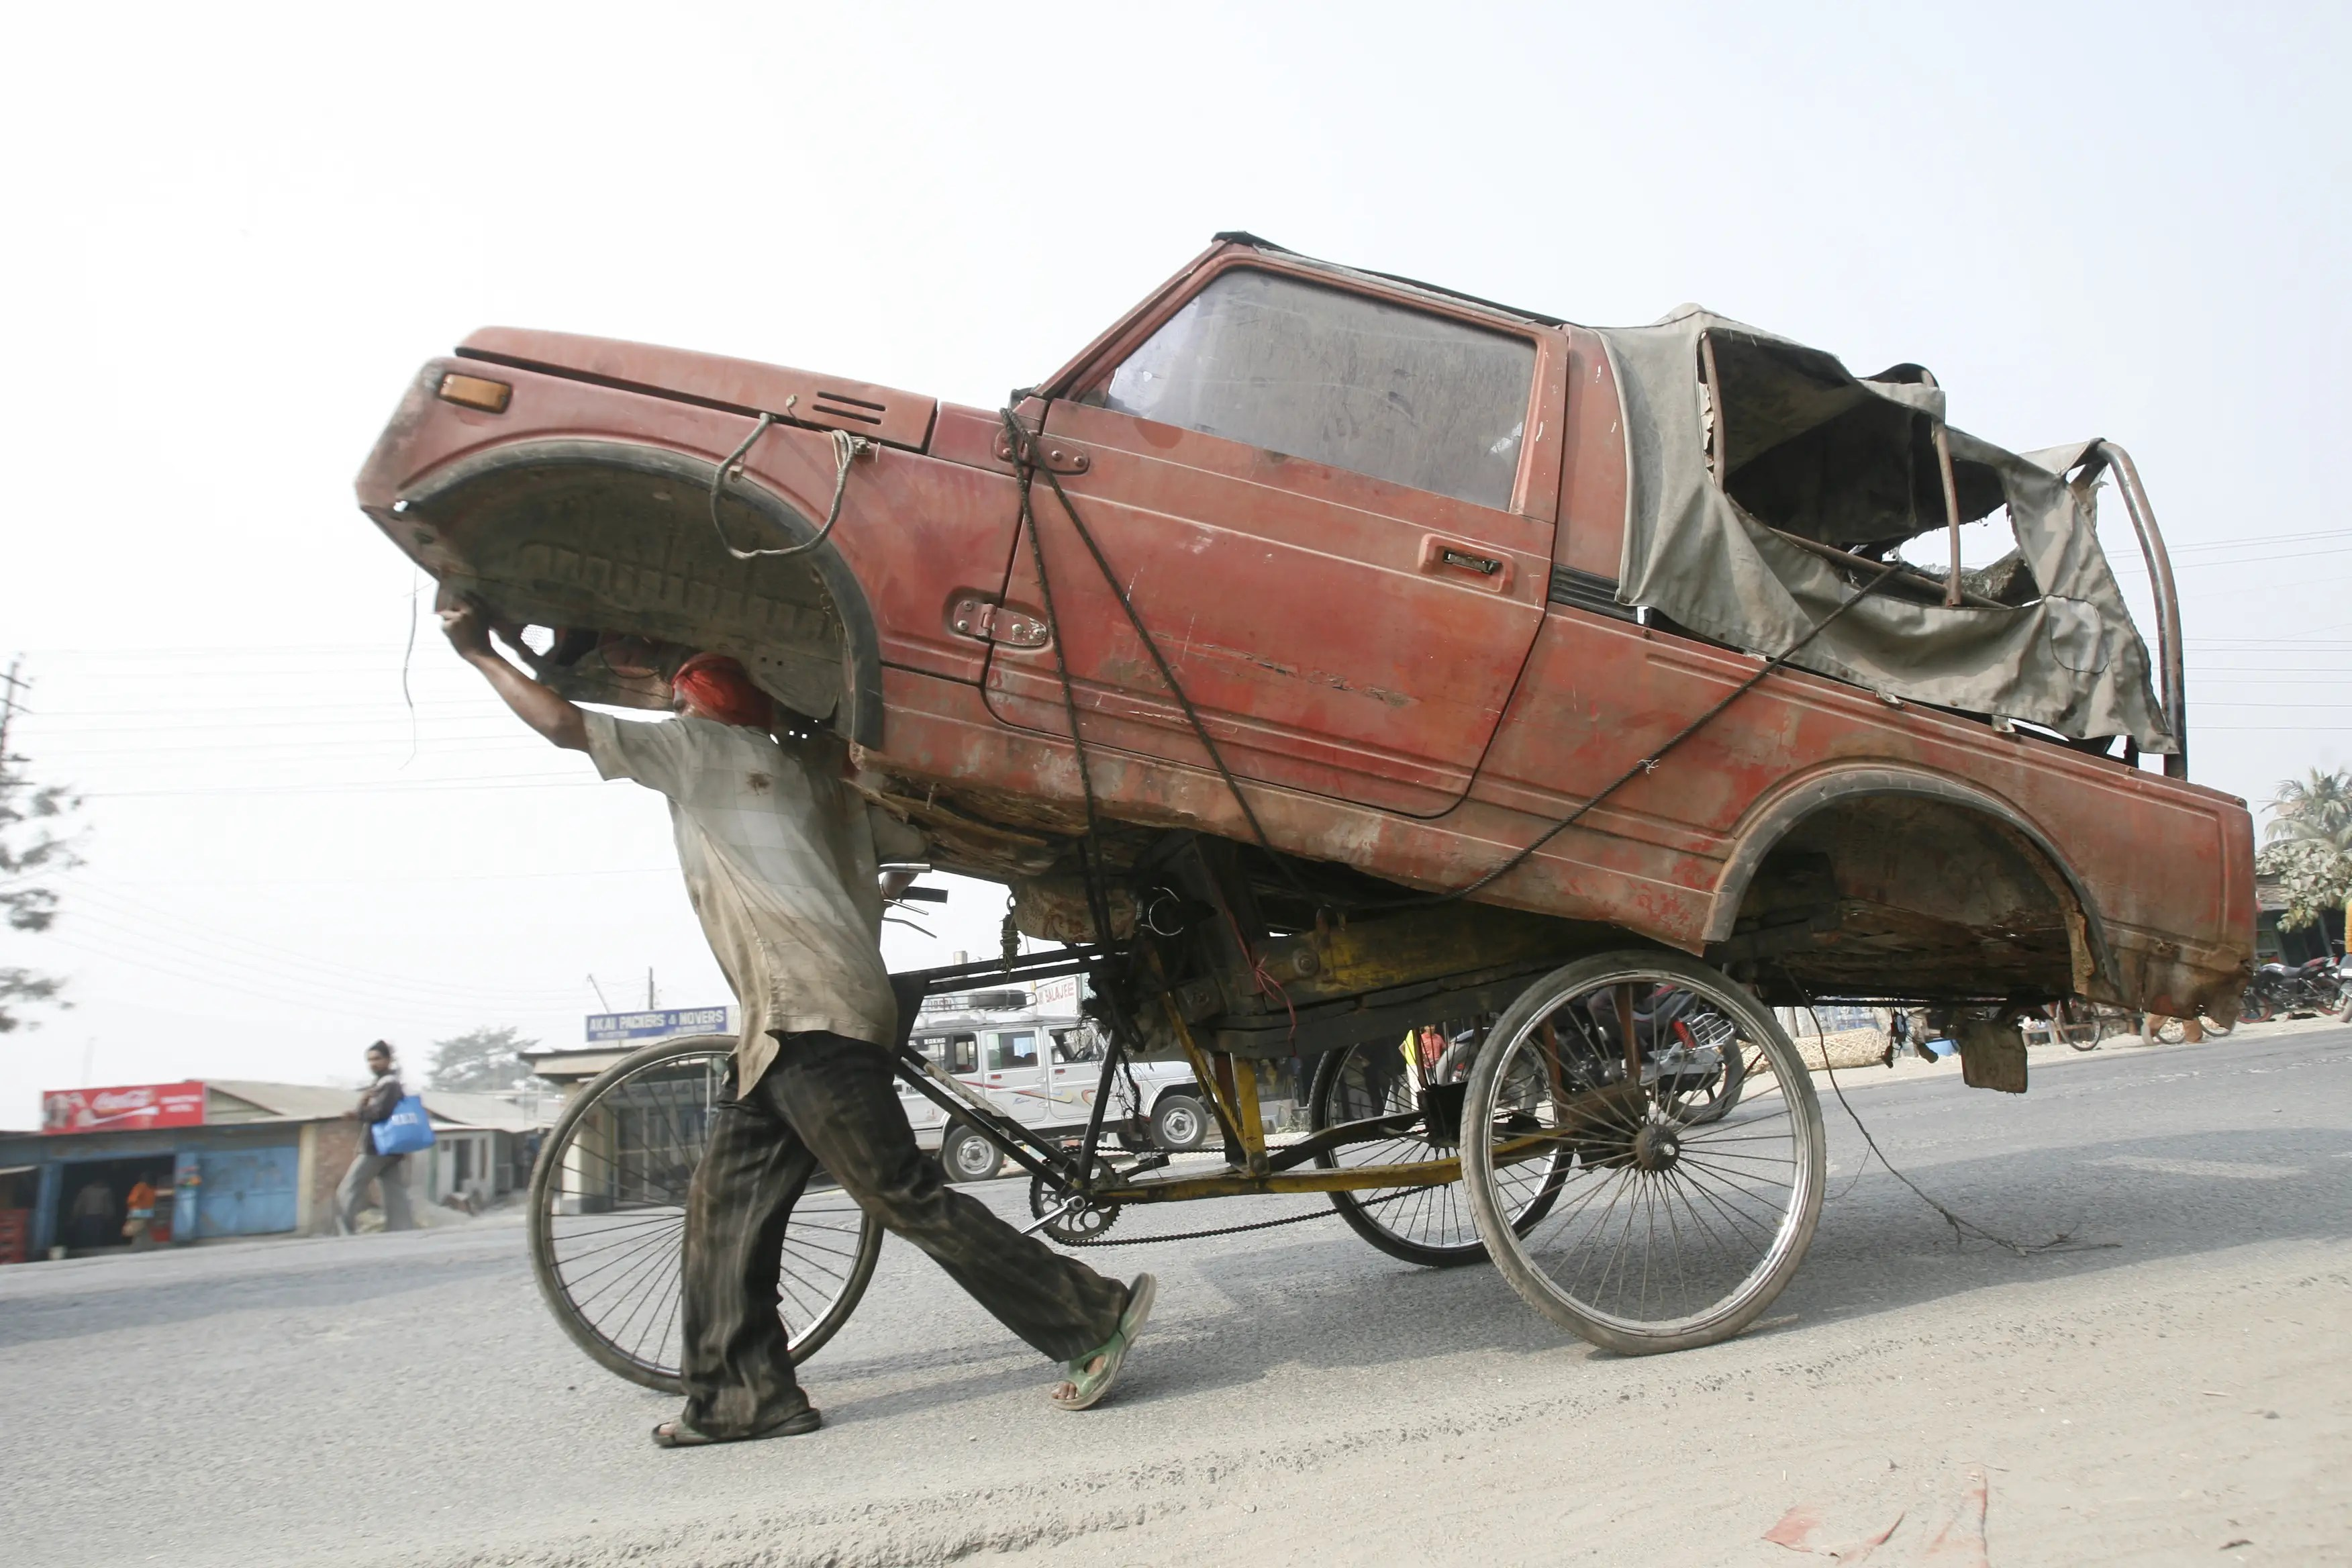 An Indian rickshaw driver is taking a wrecked car for a ride.